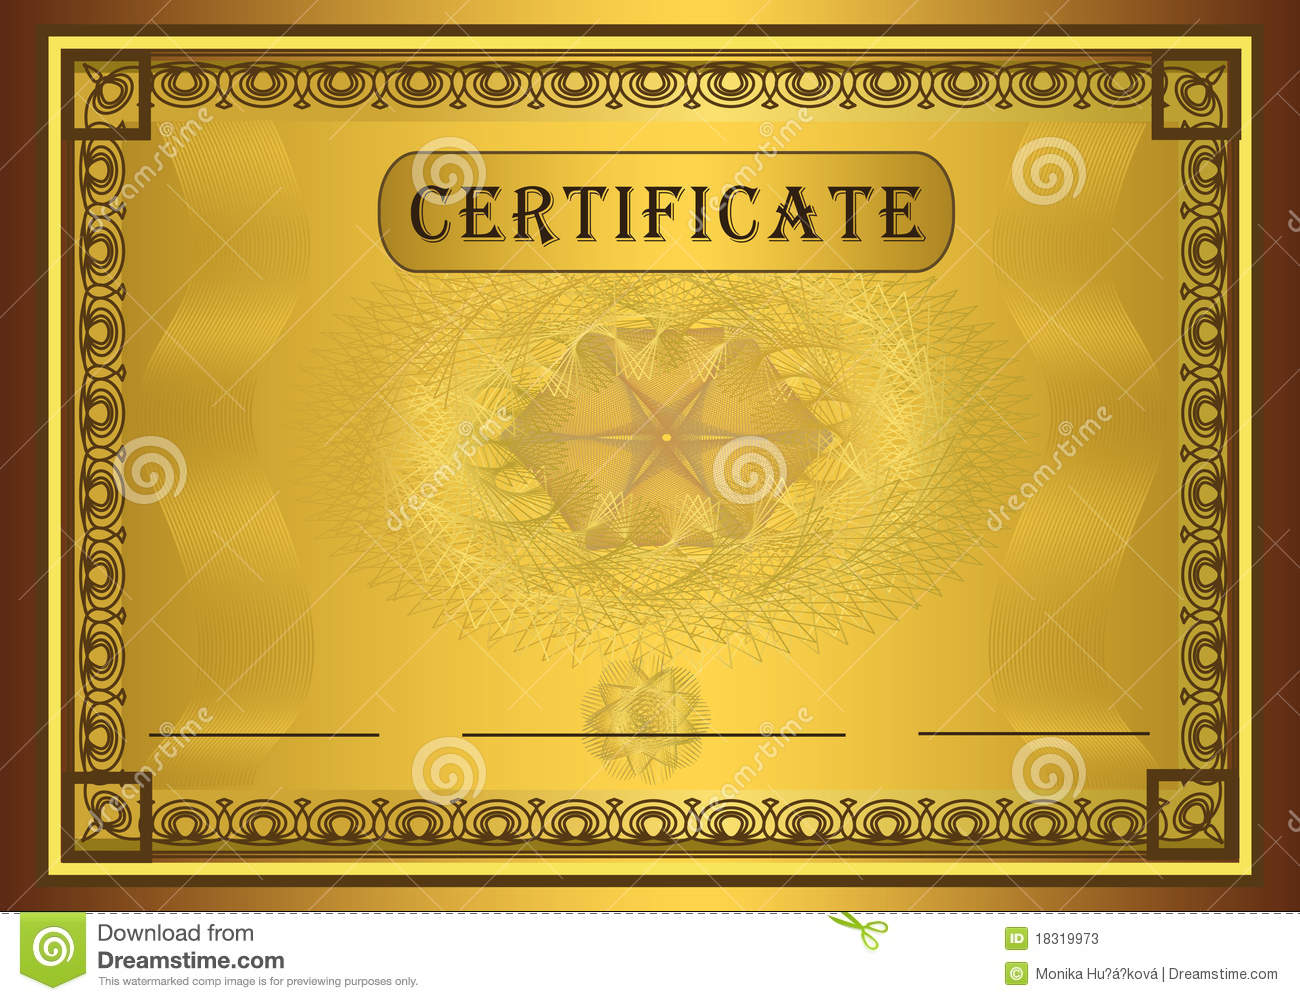 Certificate Gold Frame Stock Photos - Image: 18319973